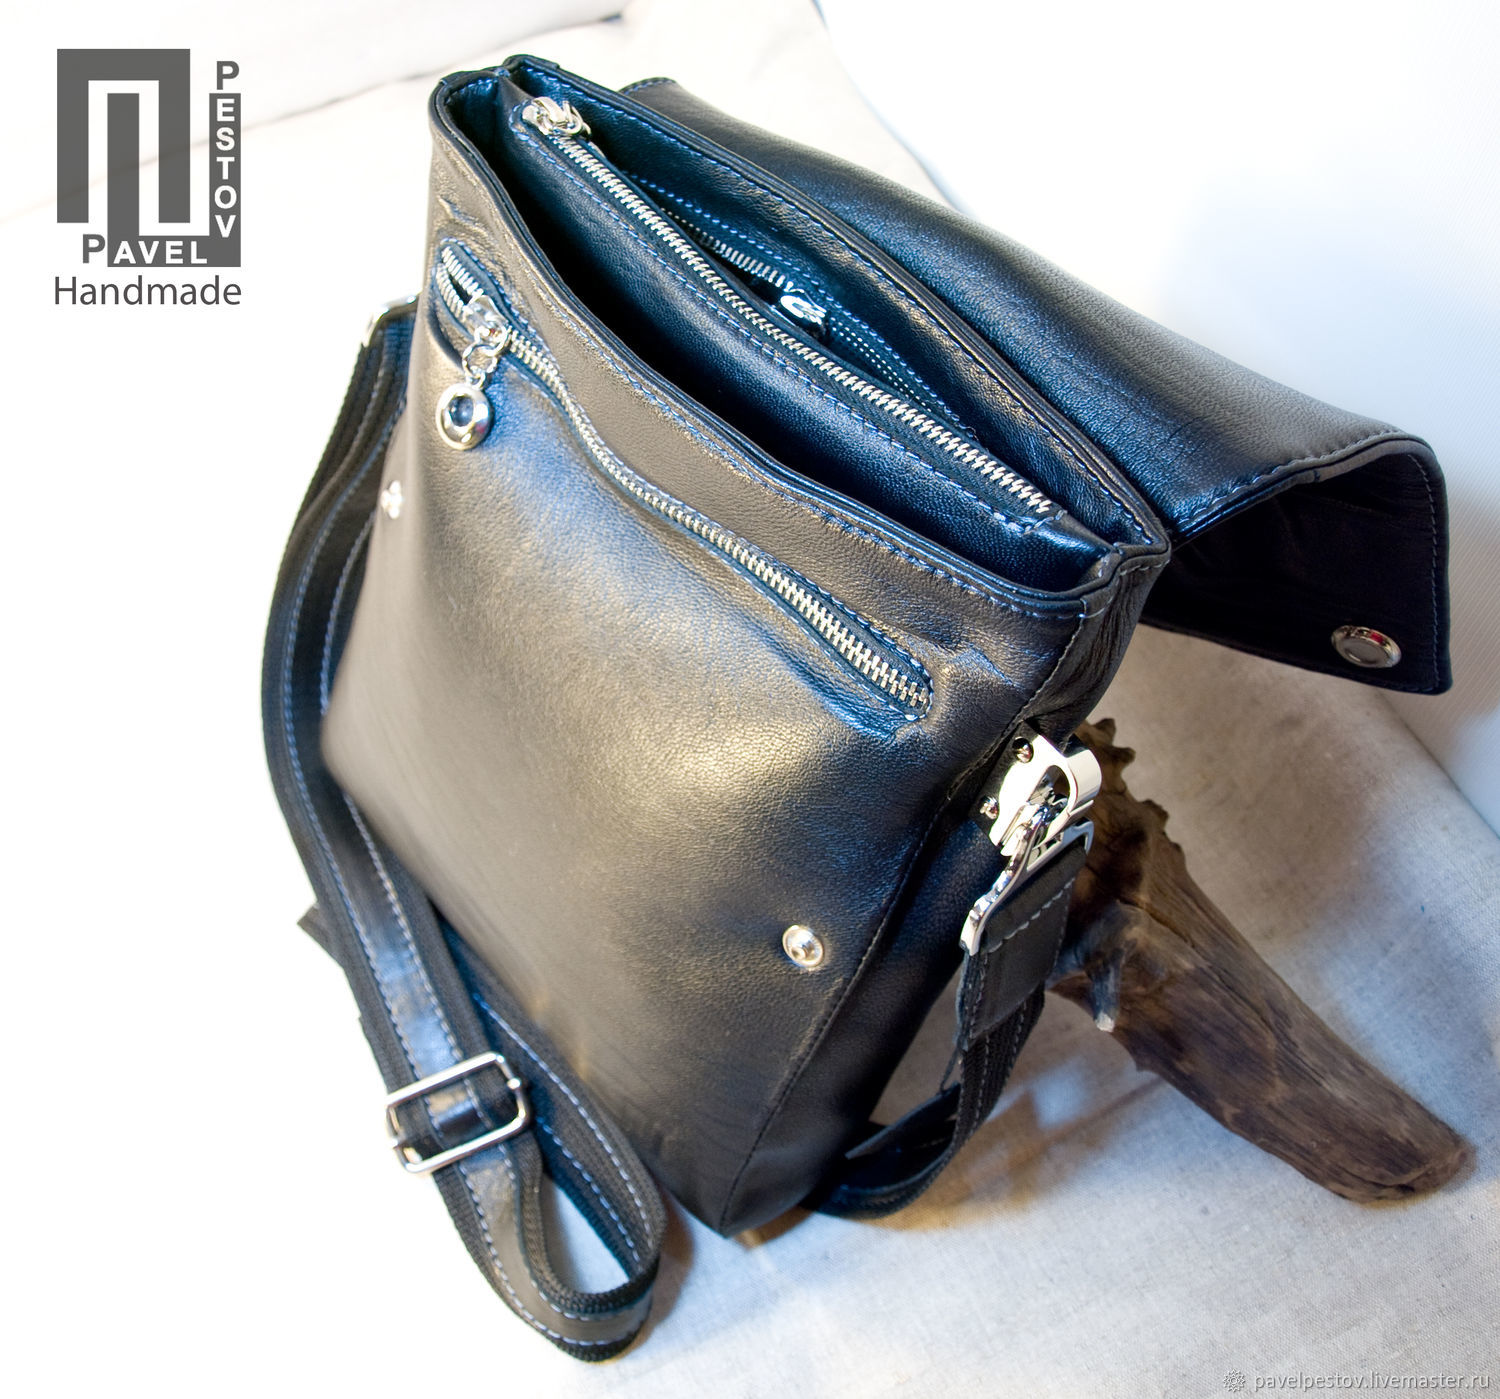 1c2e32edc52c My Men s Bags handmade. men s bag (tablet). Pavel Pestov - Handmade.